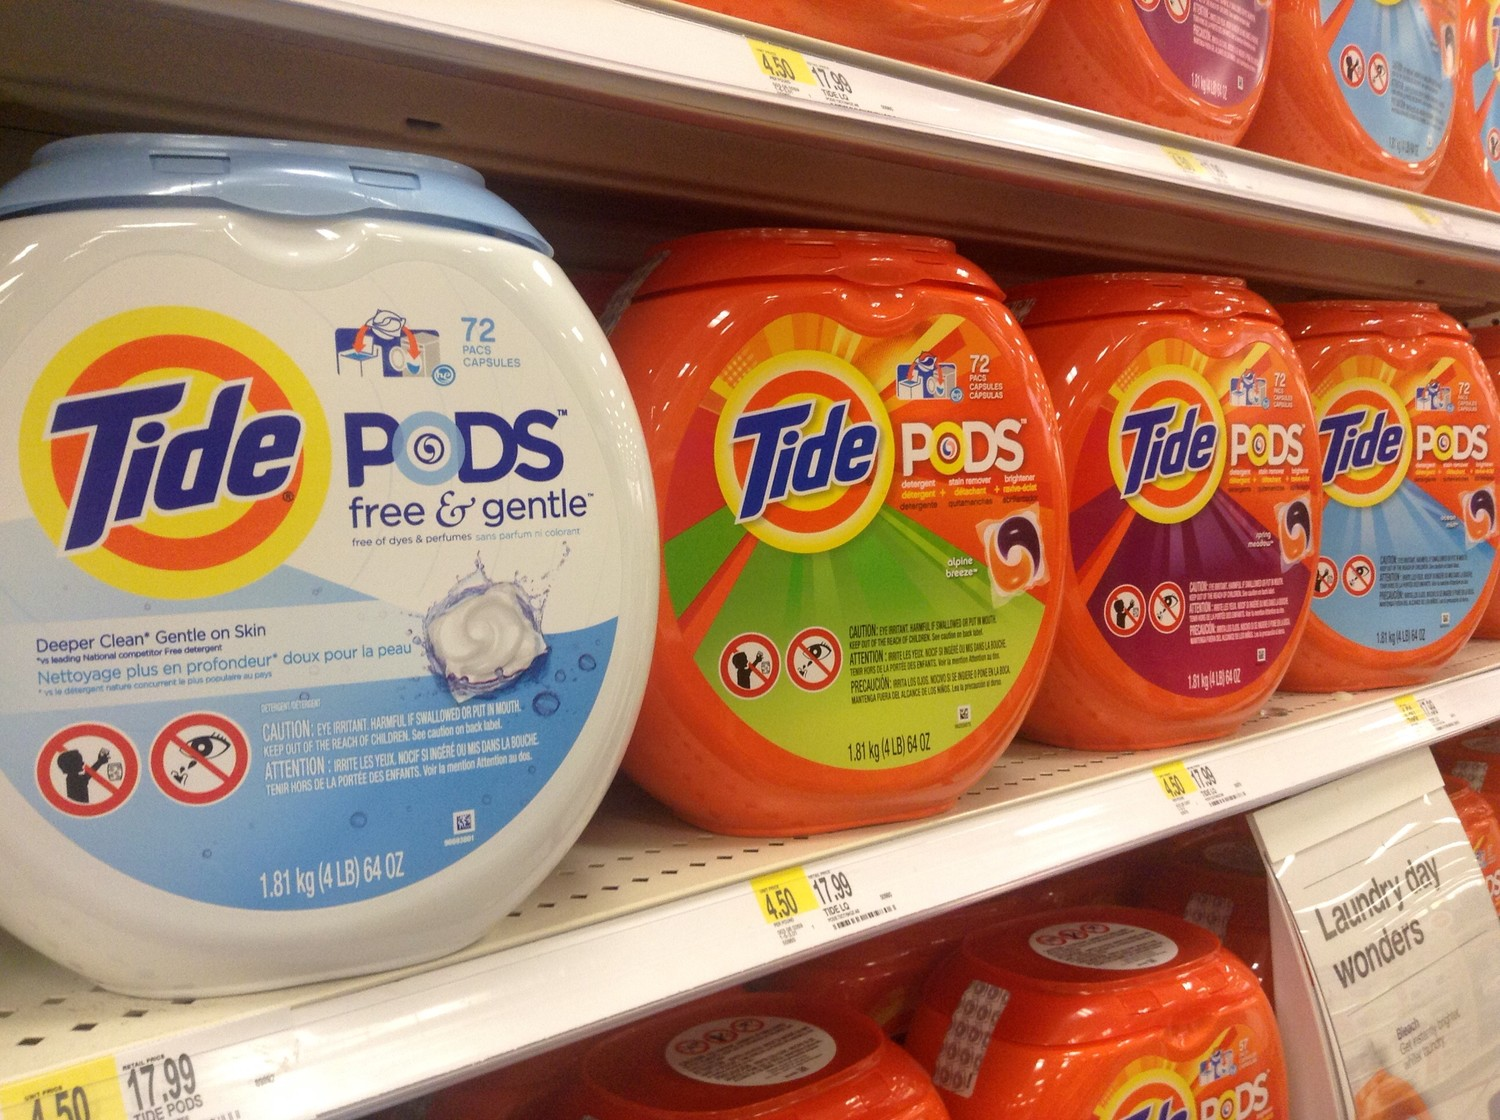 Eating Tide Pods on camera is the latest fad to take the teenage world by storm, but doctors warn that the act is the equivalent of poisoning oneself.